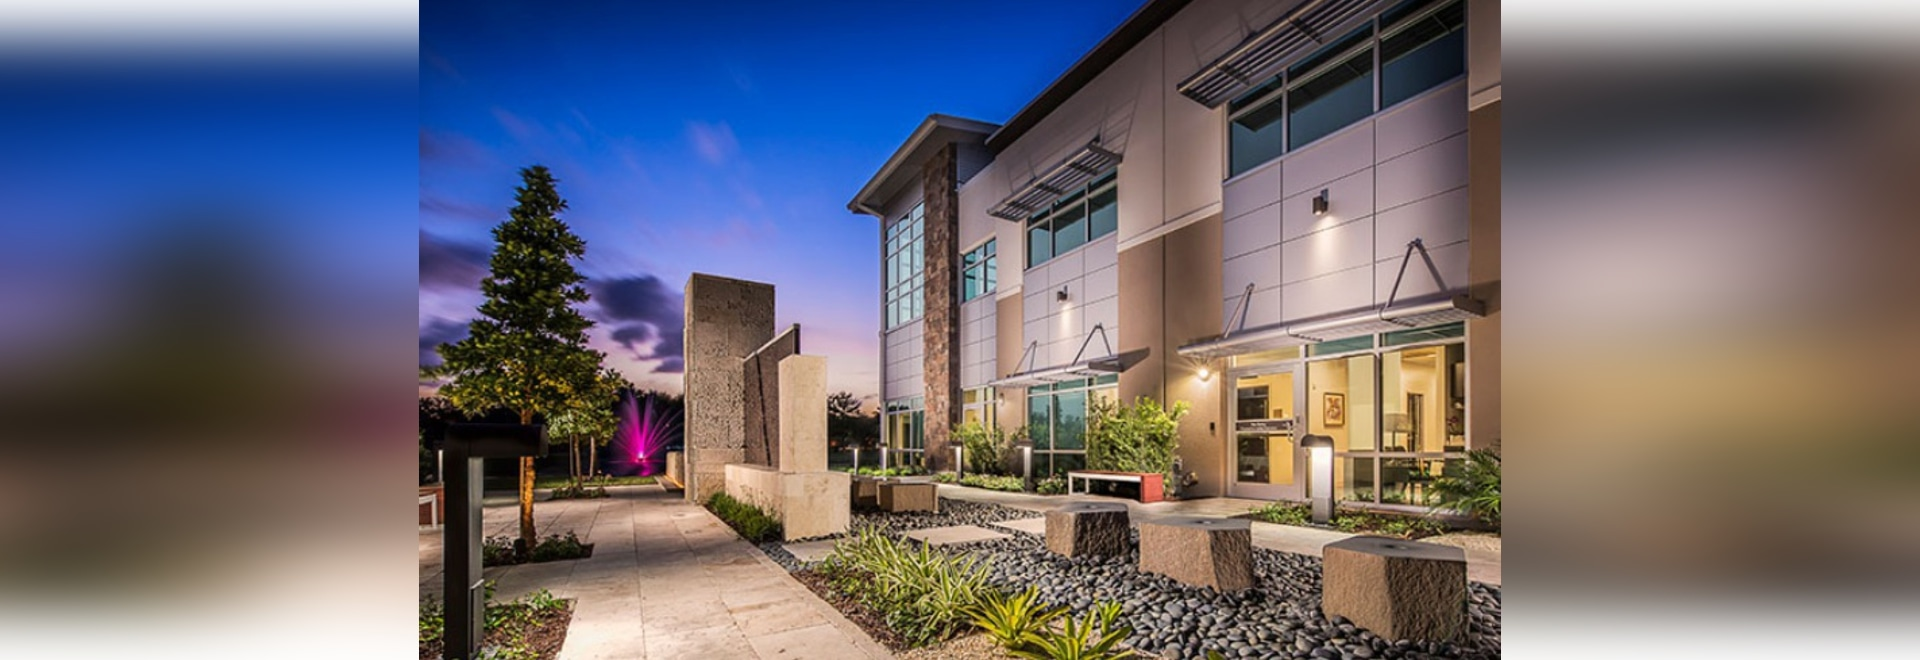 The Zen garden at Jupiter Medical Center's Margaret W. Niedland Breast Center is the centerpiece of the 26,000-square-foot project that features comprehensive women's services.